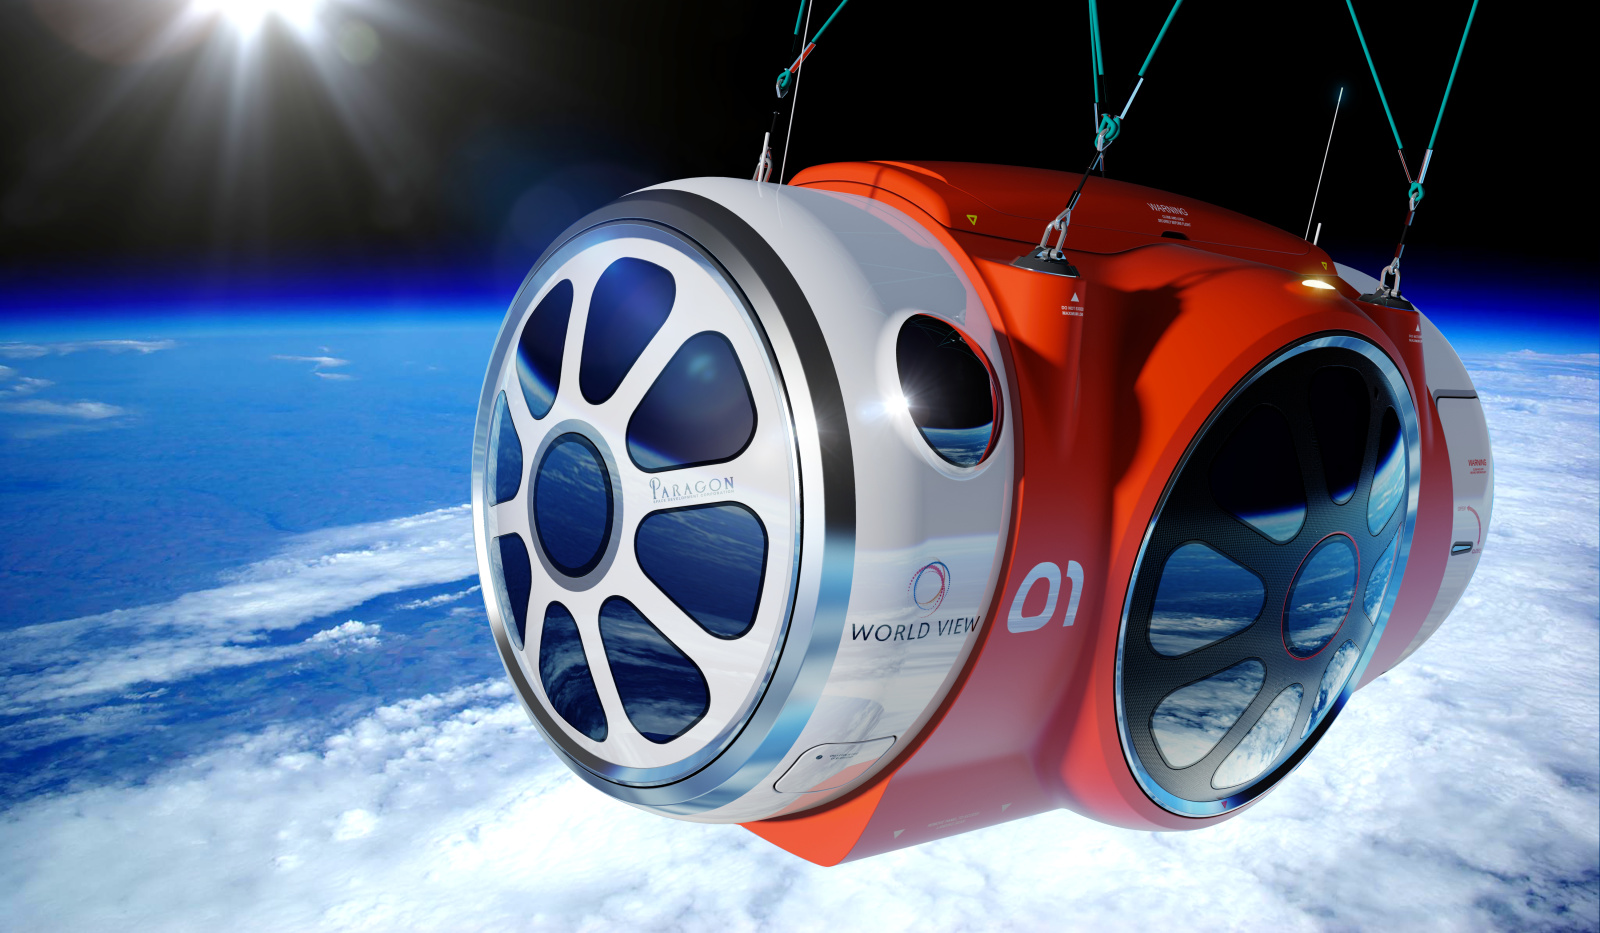 red capsule of the world view space experience